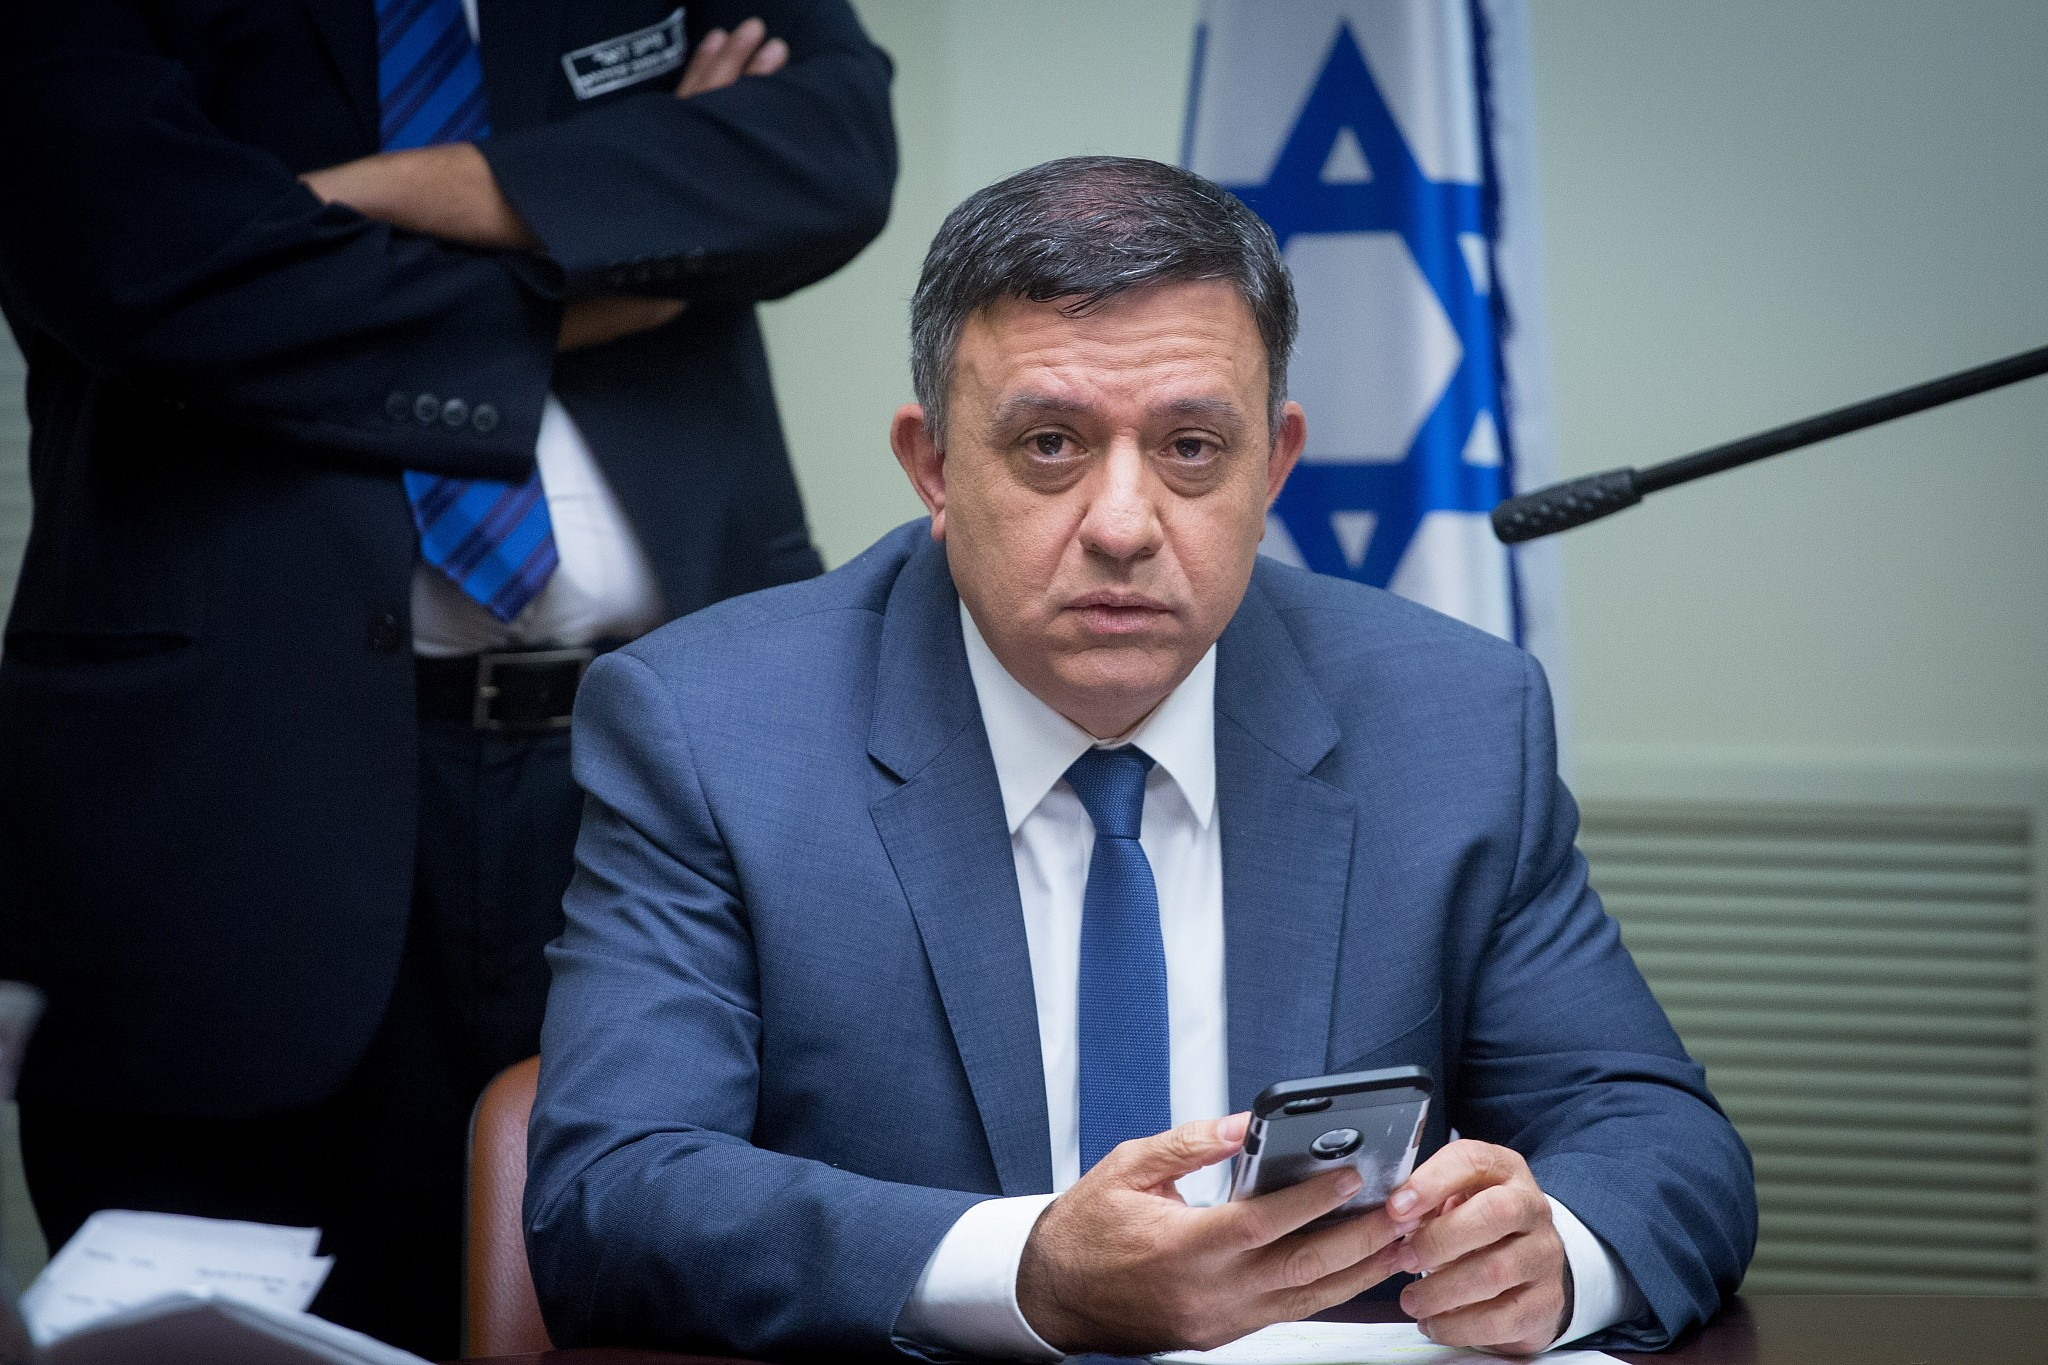 Head of the Zionist Union faction Avi Gabbay leads a faction meeting at the Knesset